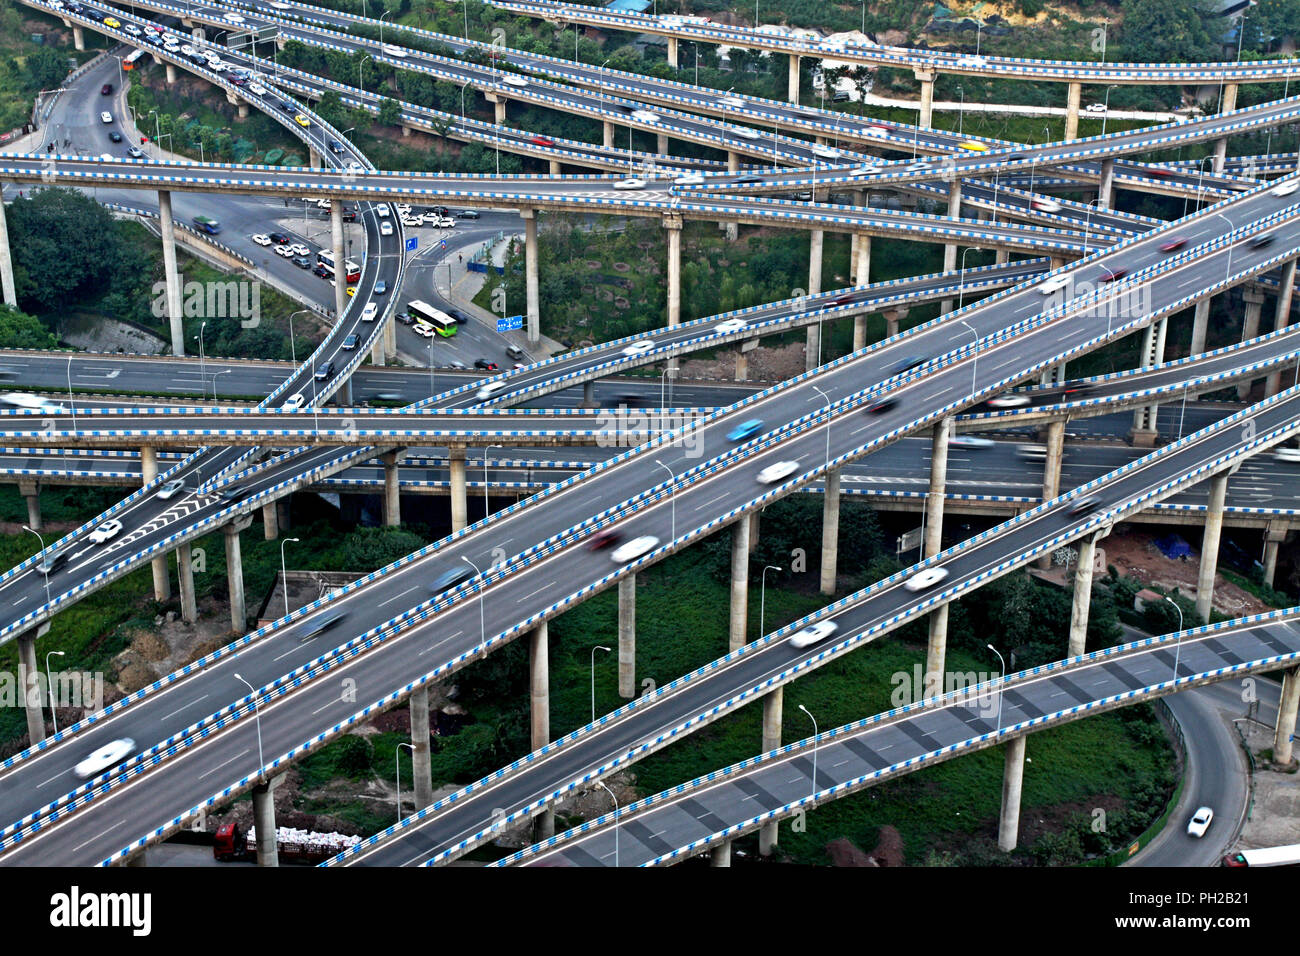 Chongqing, Chongqing, China. 30th Aug, 2018. Chongqing, CHINA-The five-level Huangjuewan Overpass is regarded as the most complicated overpass in southwest China's Chongqing.The overpass consists of 15 ramps with a total length of 16,414 meters. Credit: SIPA Asia/ZUMA Wire/Alamy Live News - Stock Image